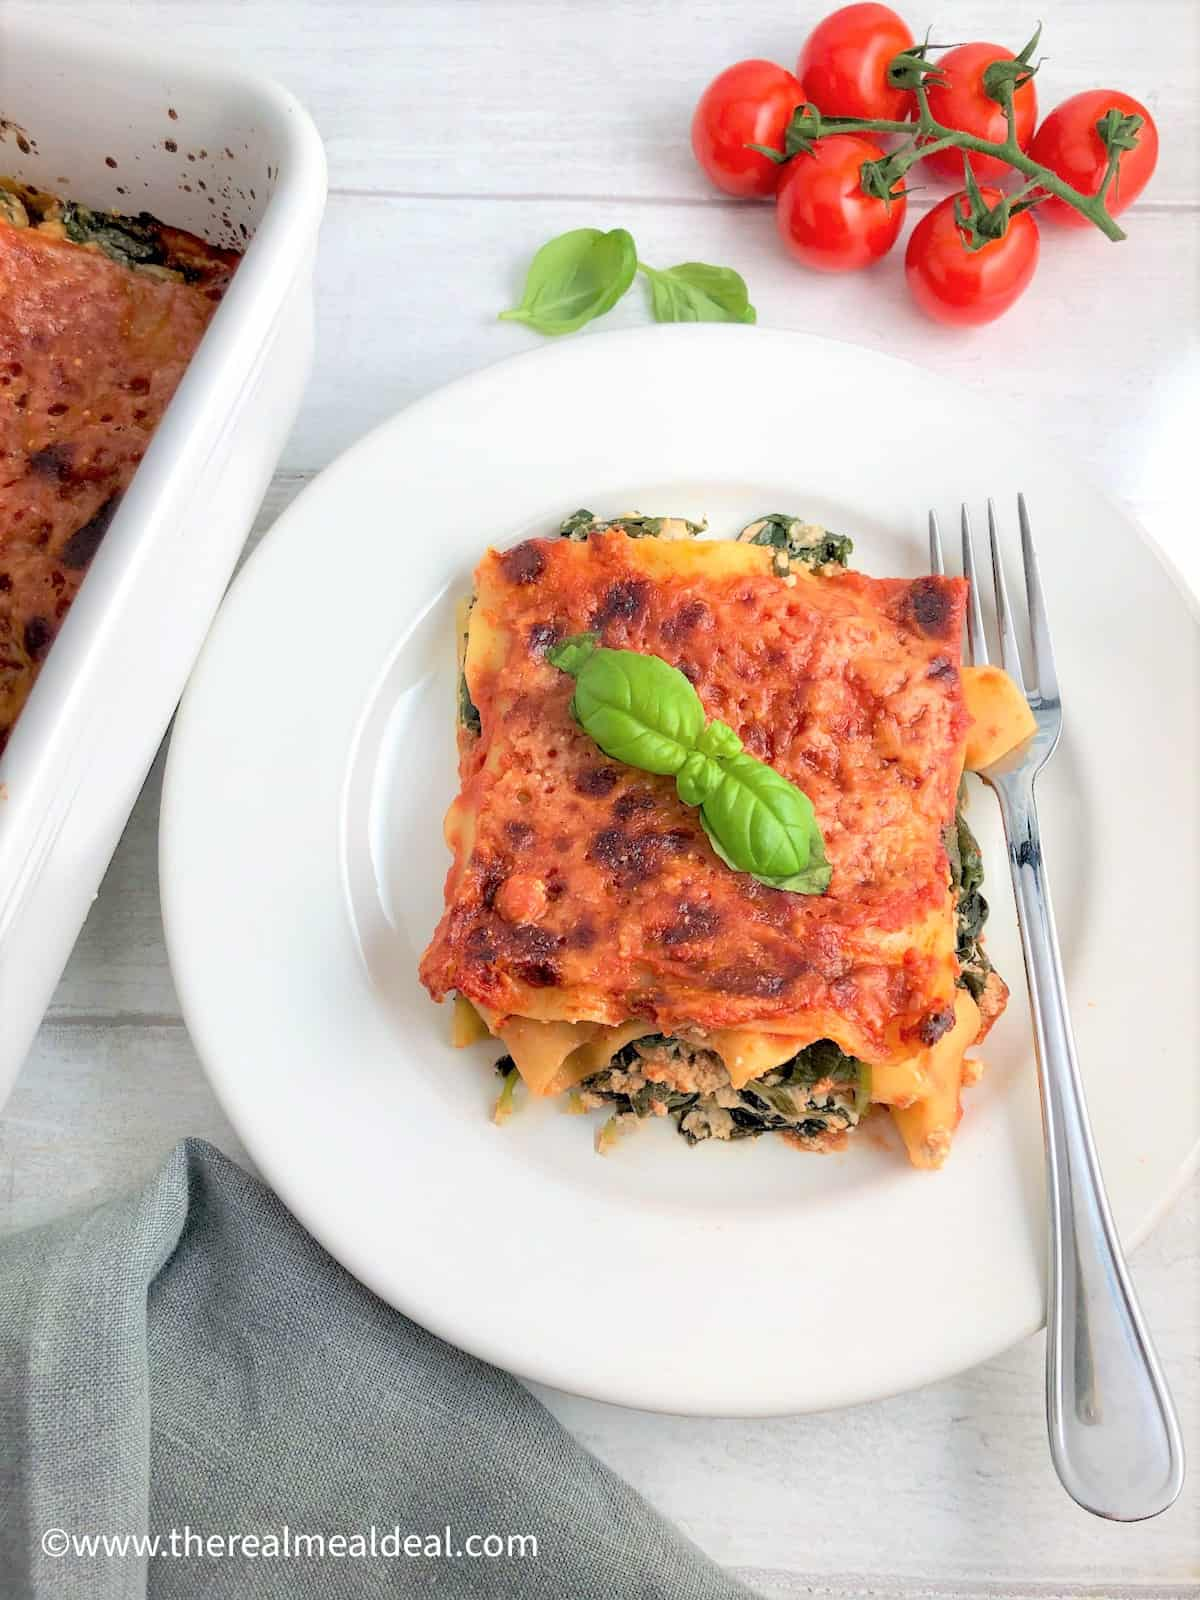 Spinach and Ricotta lasagne portion on plate with fork cherry tomatoes and basil leaves in background